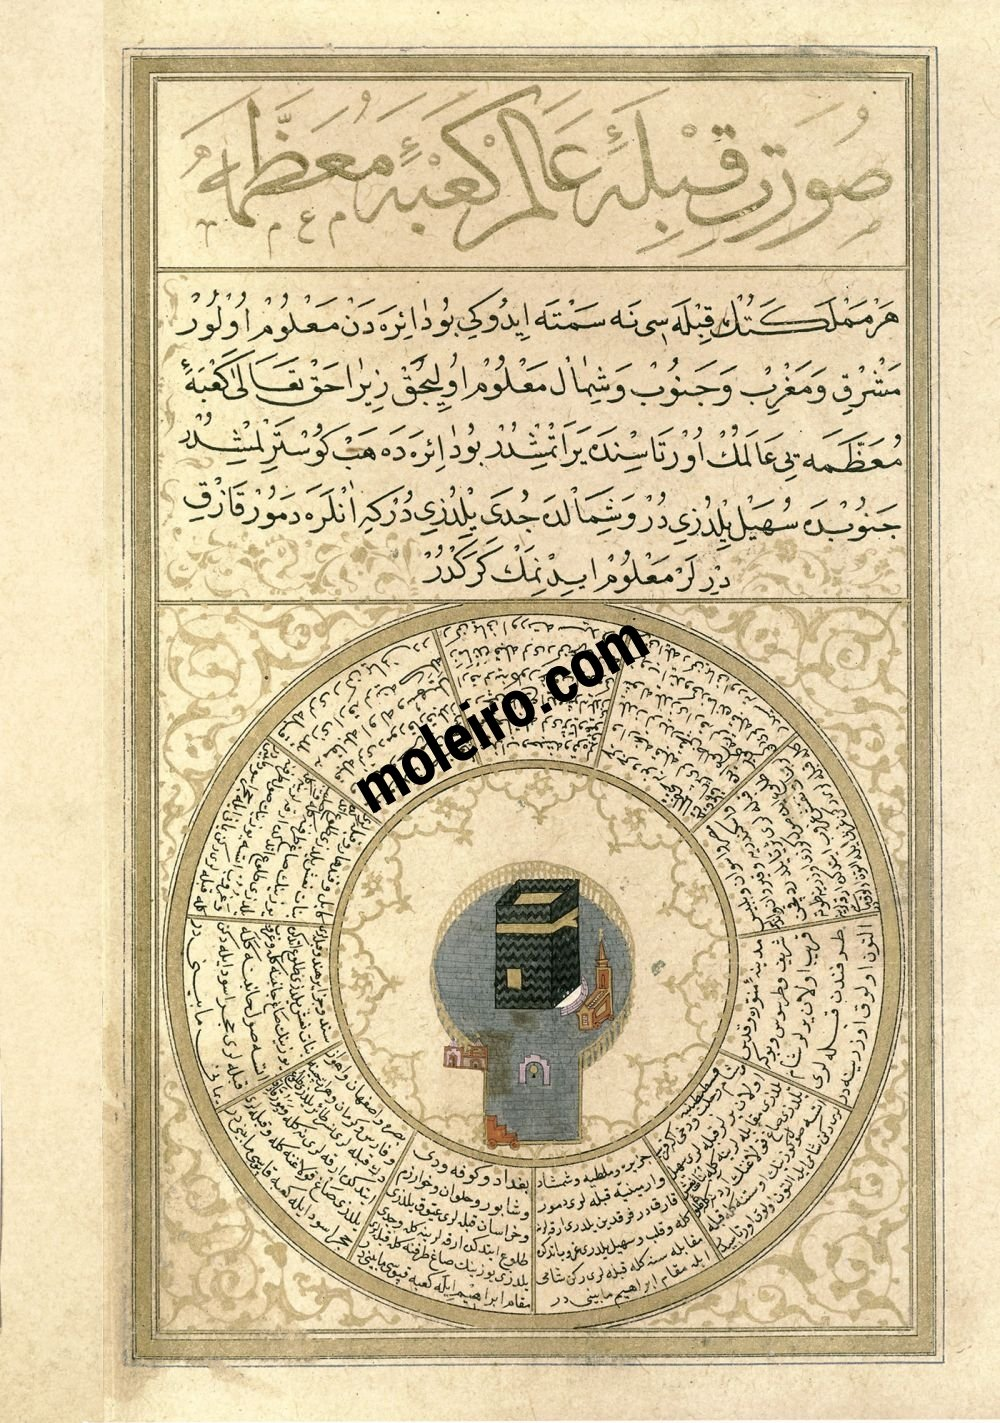 The Book of Felicity f. 74v, The Image of the Qibla of the World, the Majestic Kacba